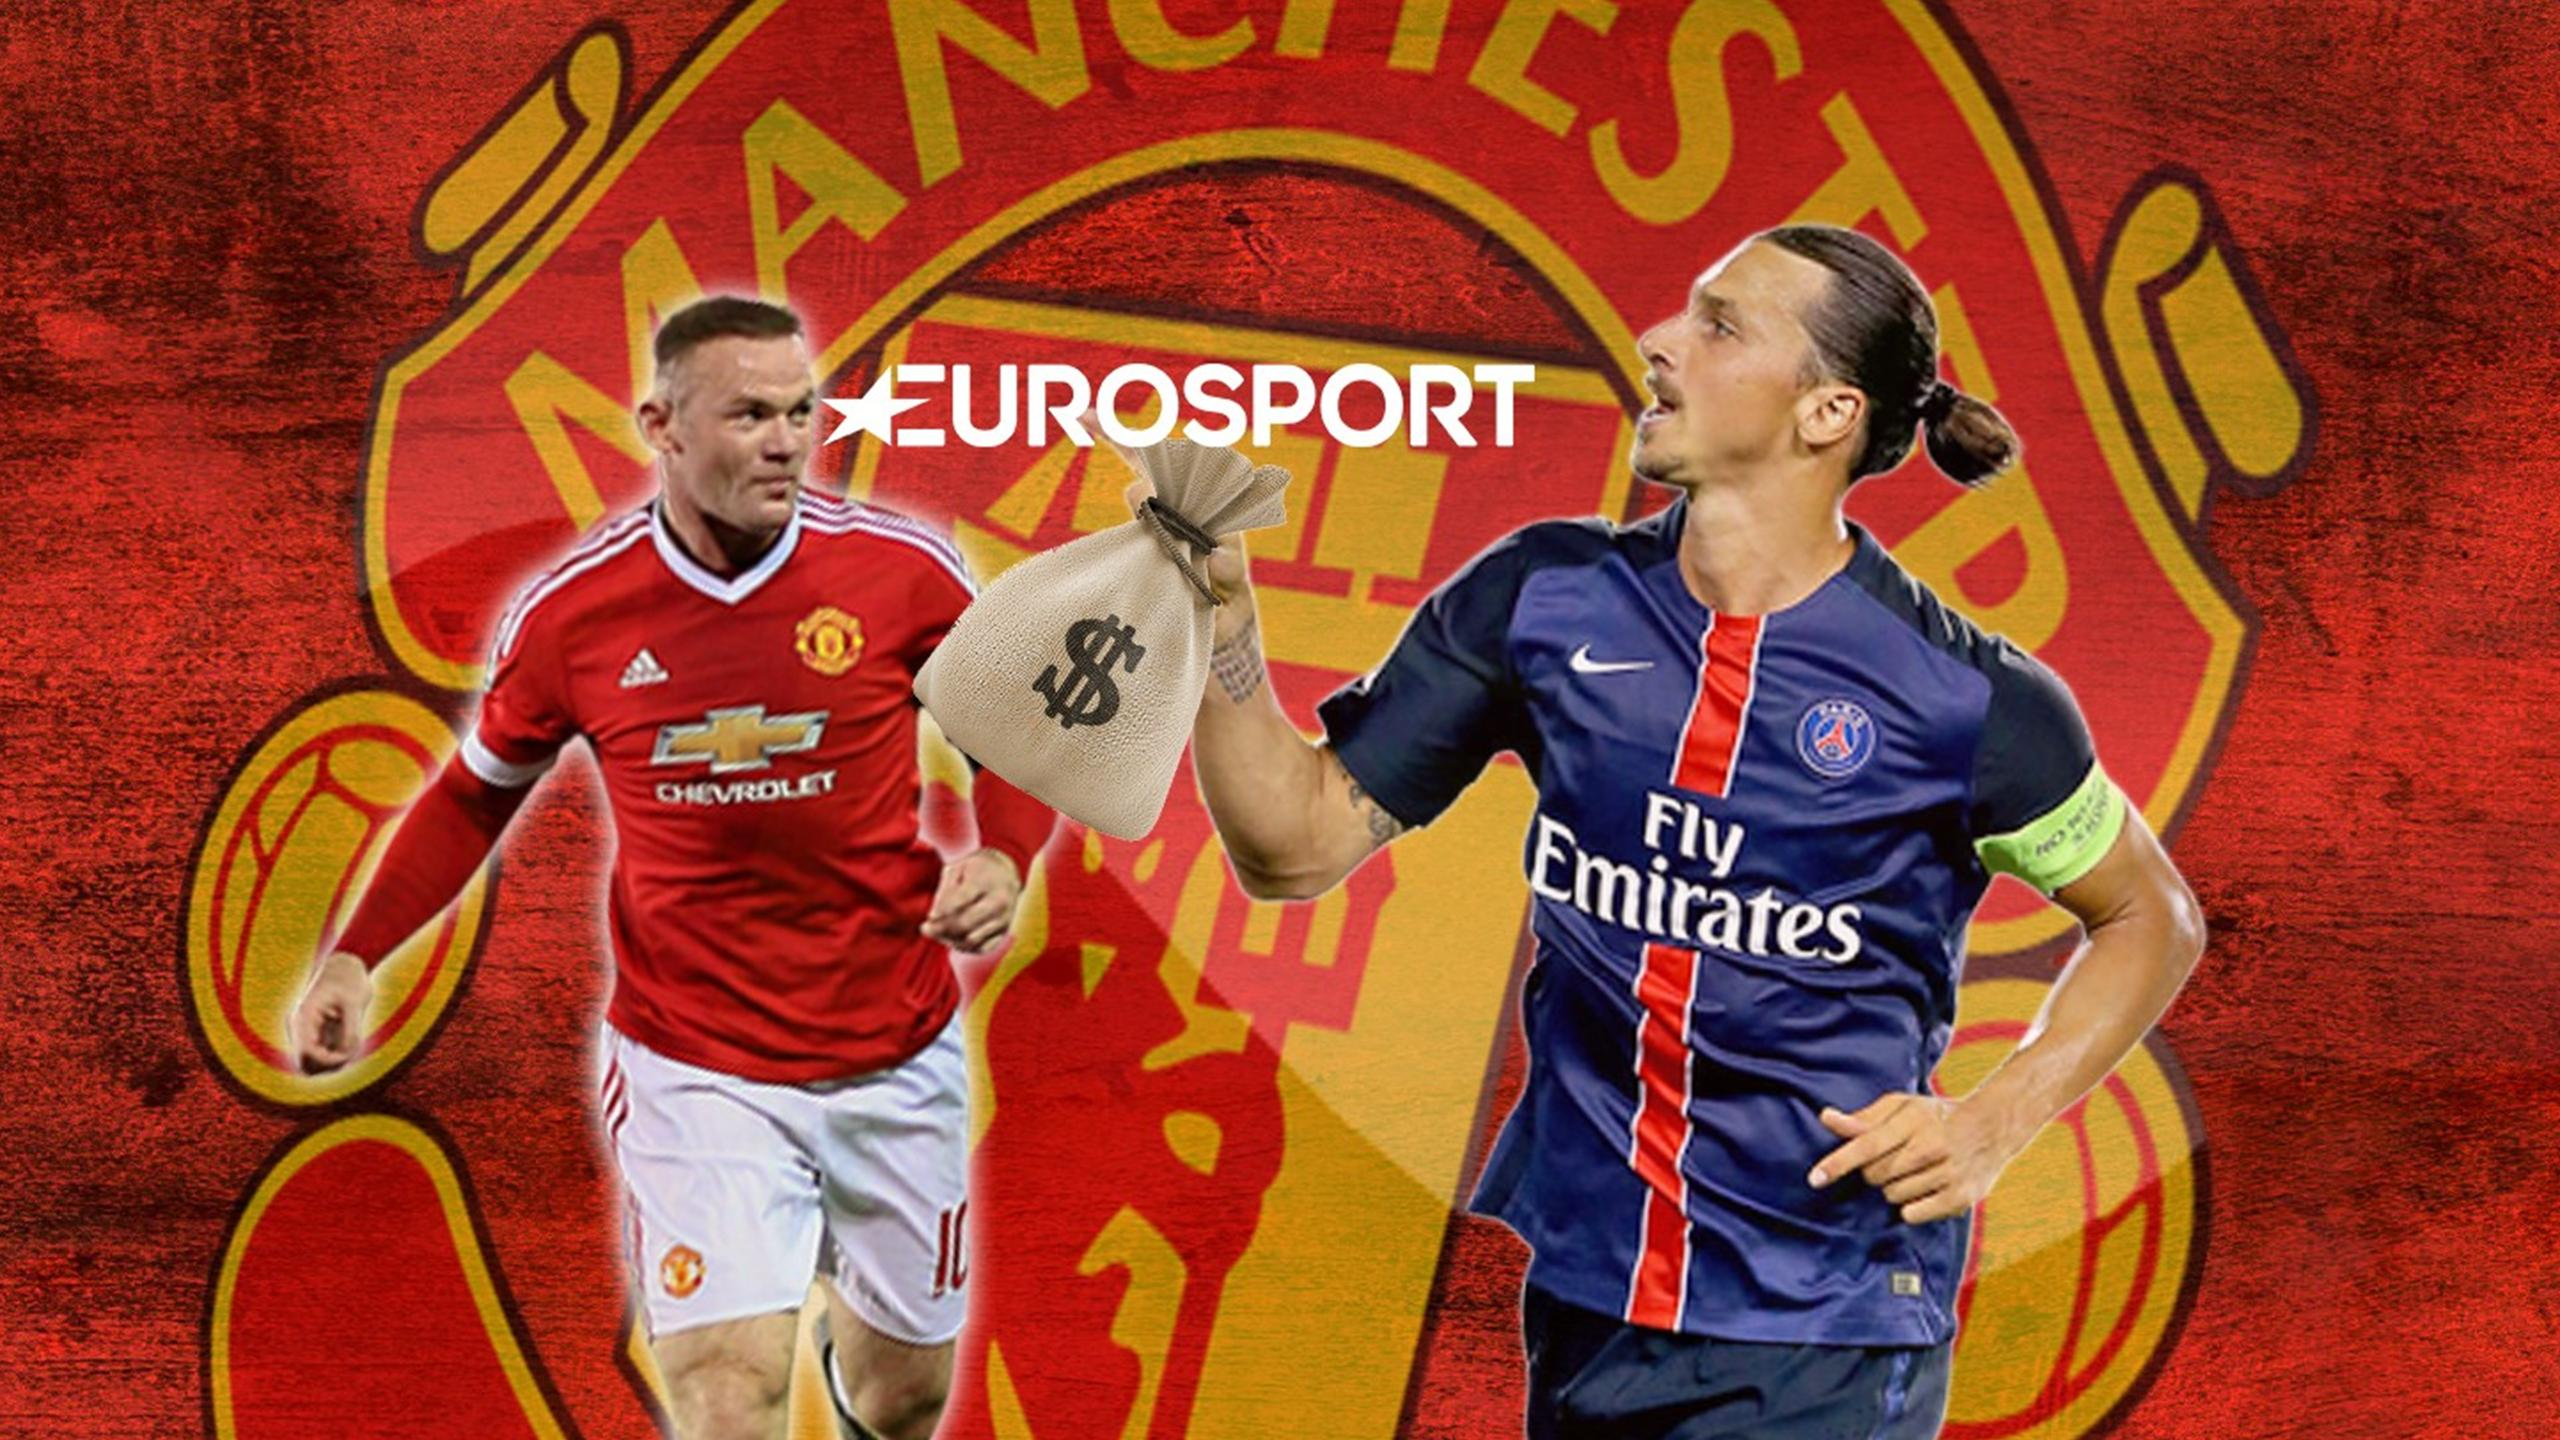 Zlatan will earn more money than United captain Wayne Rooney - Euro Papers